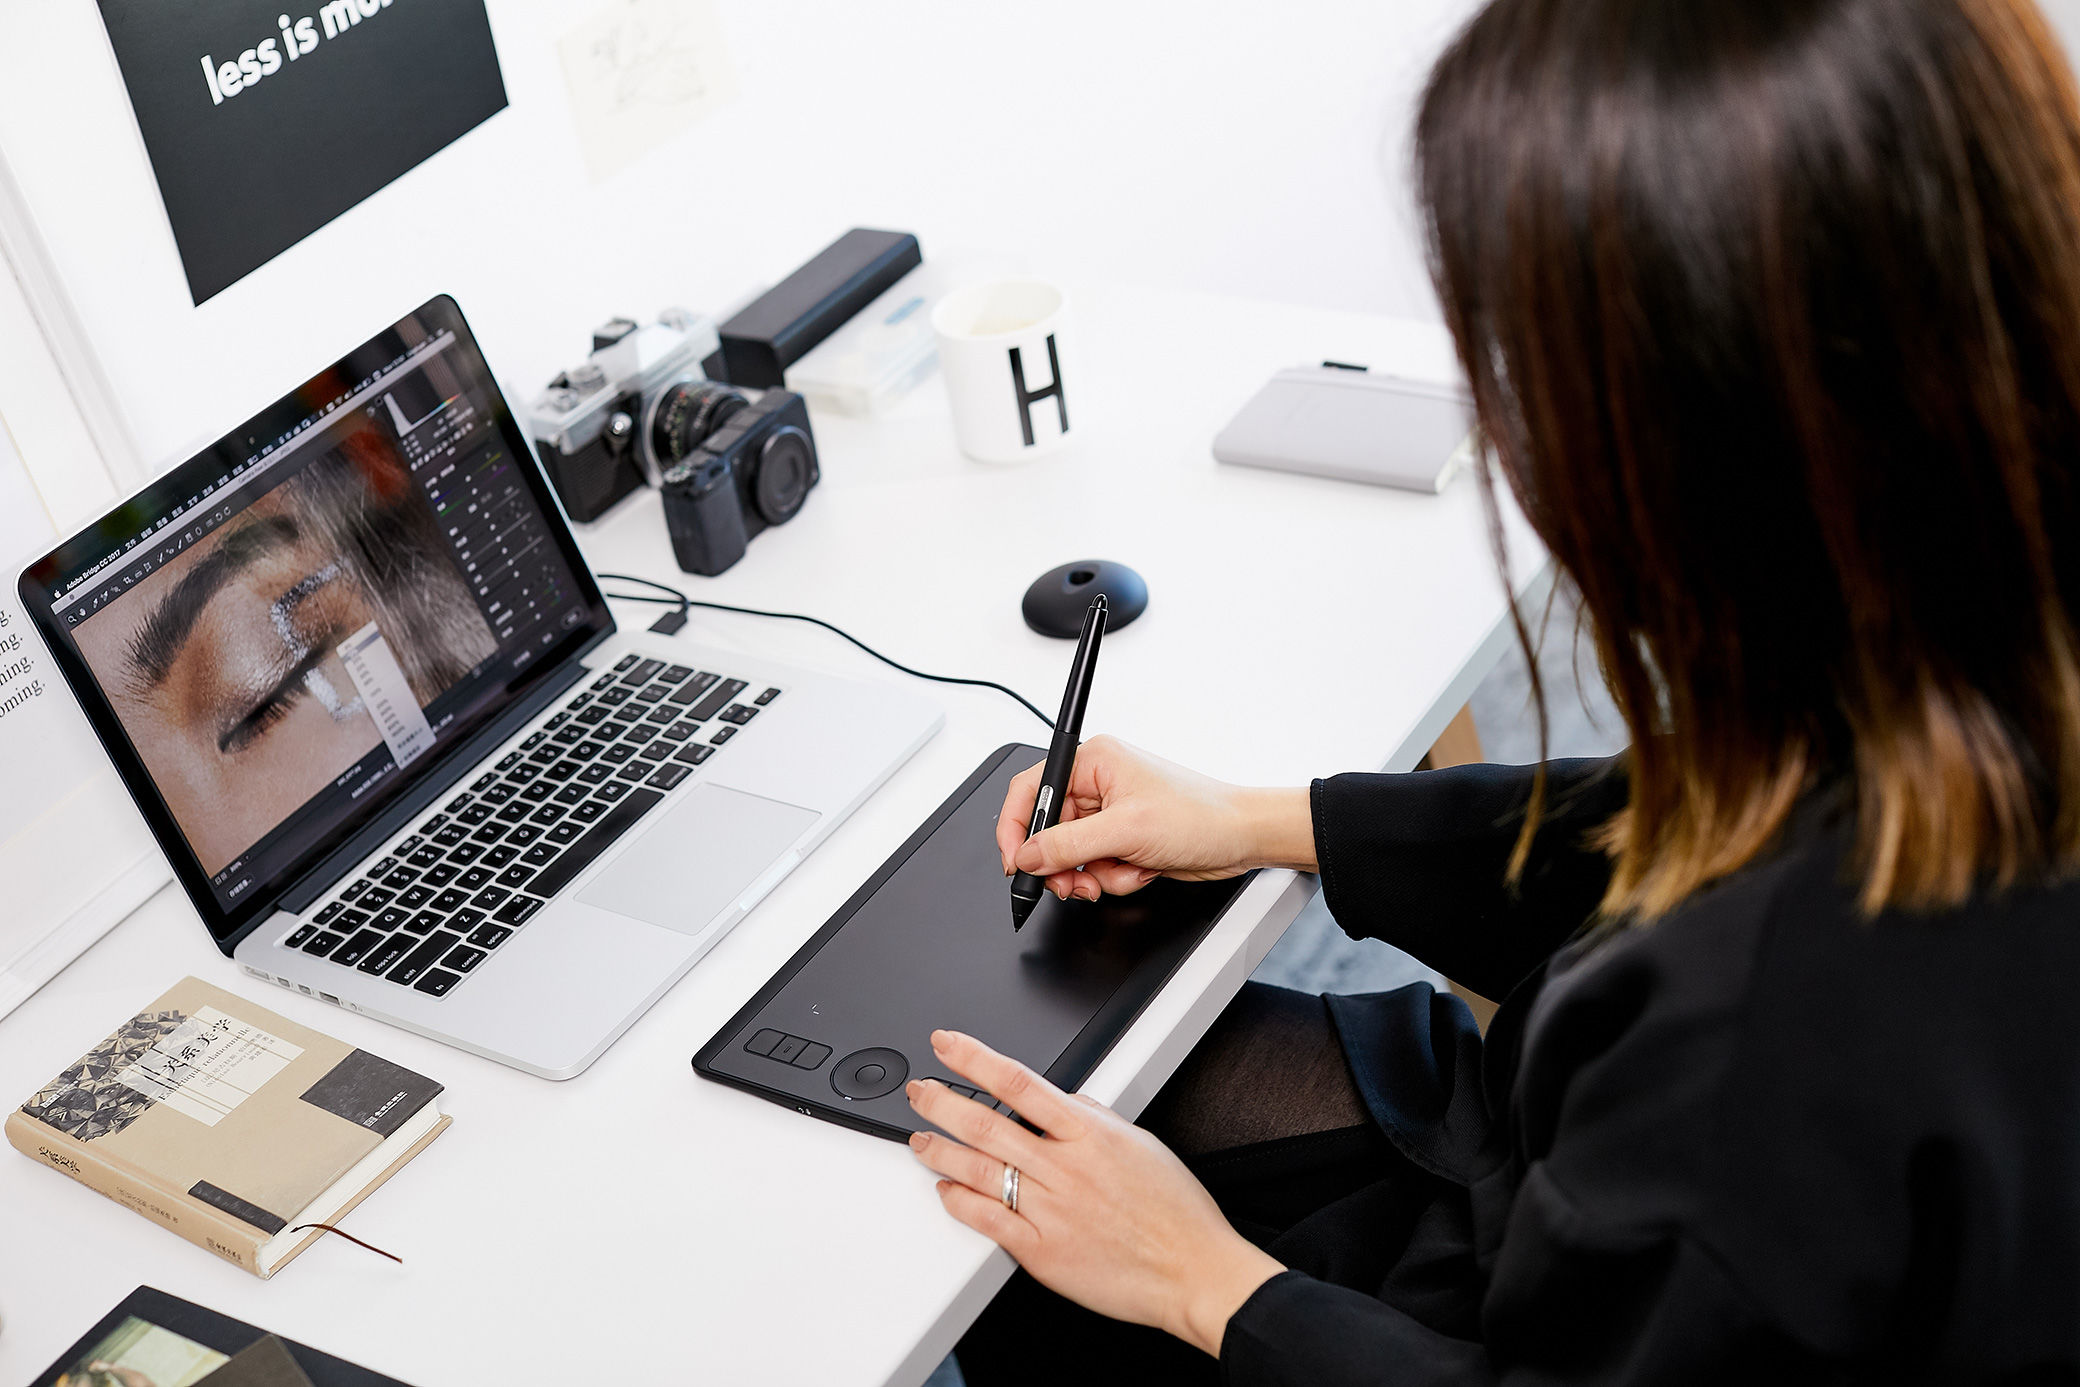 There S Now A Small Wacom Intuos Pro Again For Designers And Artists On The Move News Digital Arts